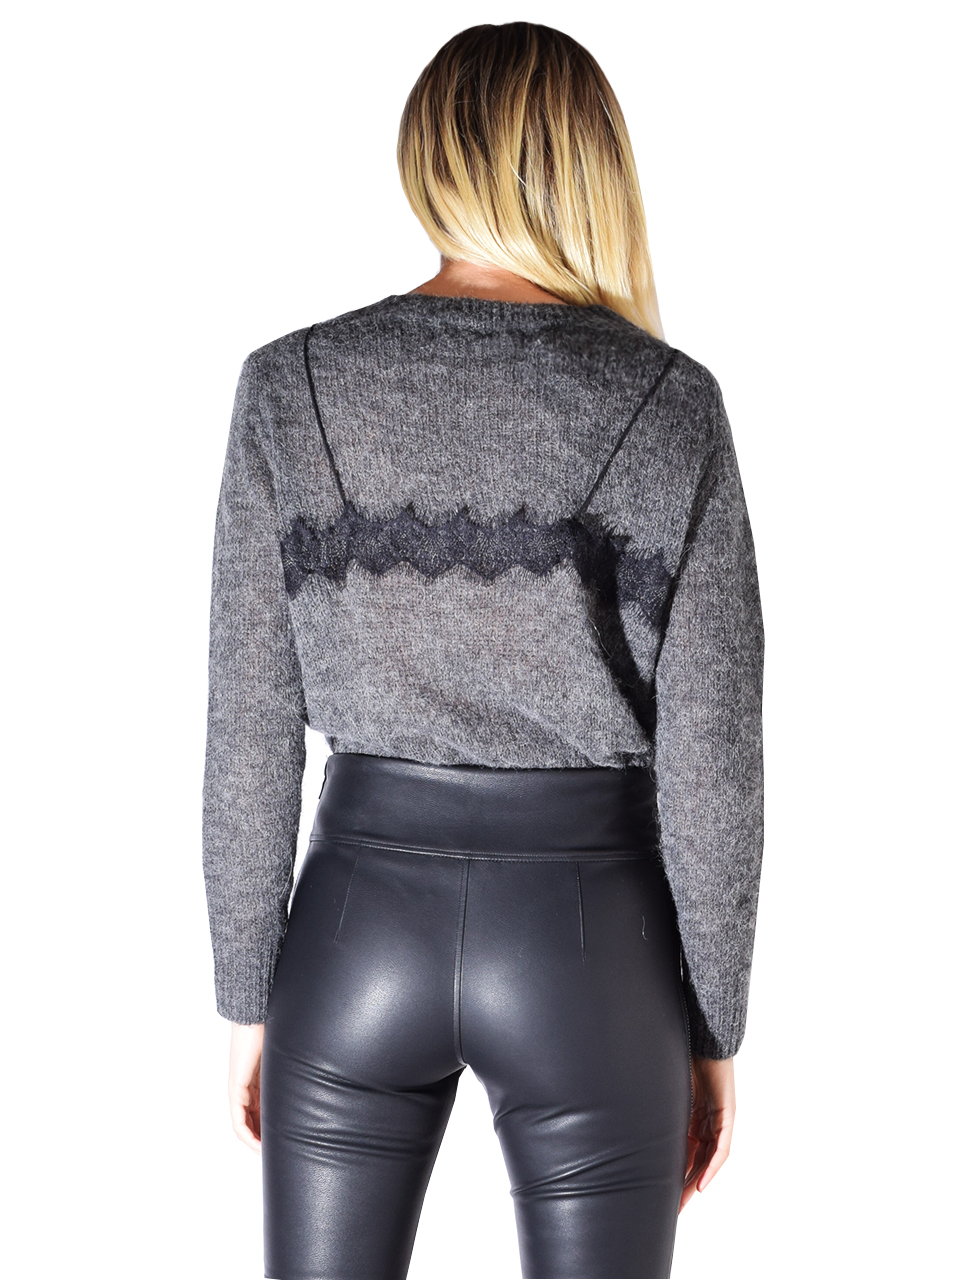 One Grey Day Tatum Pullover In Charcoal